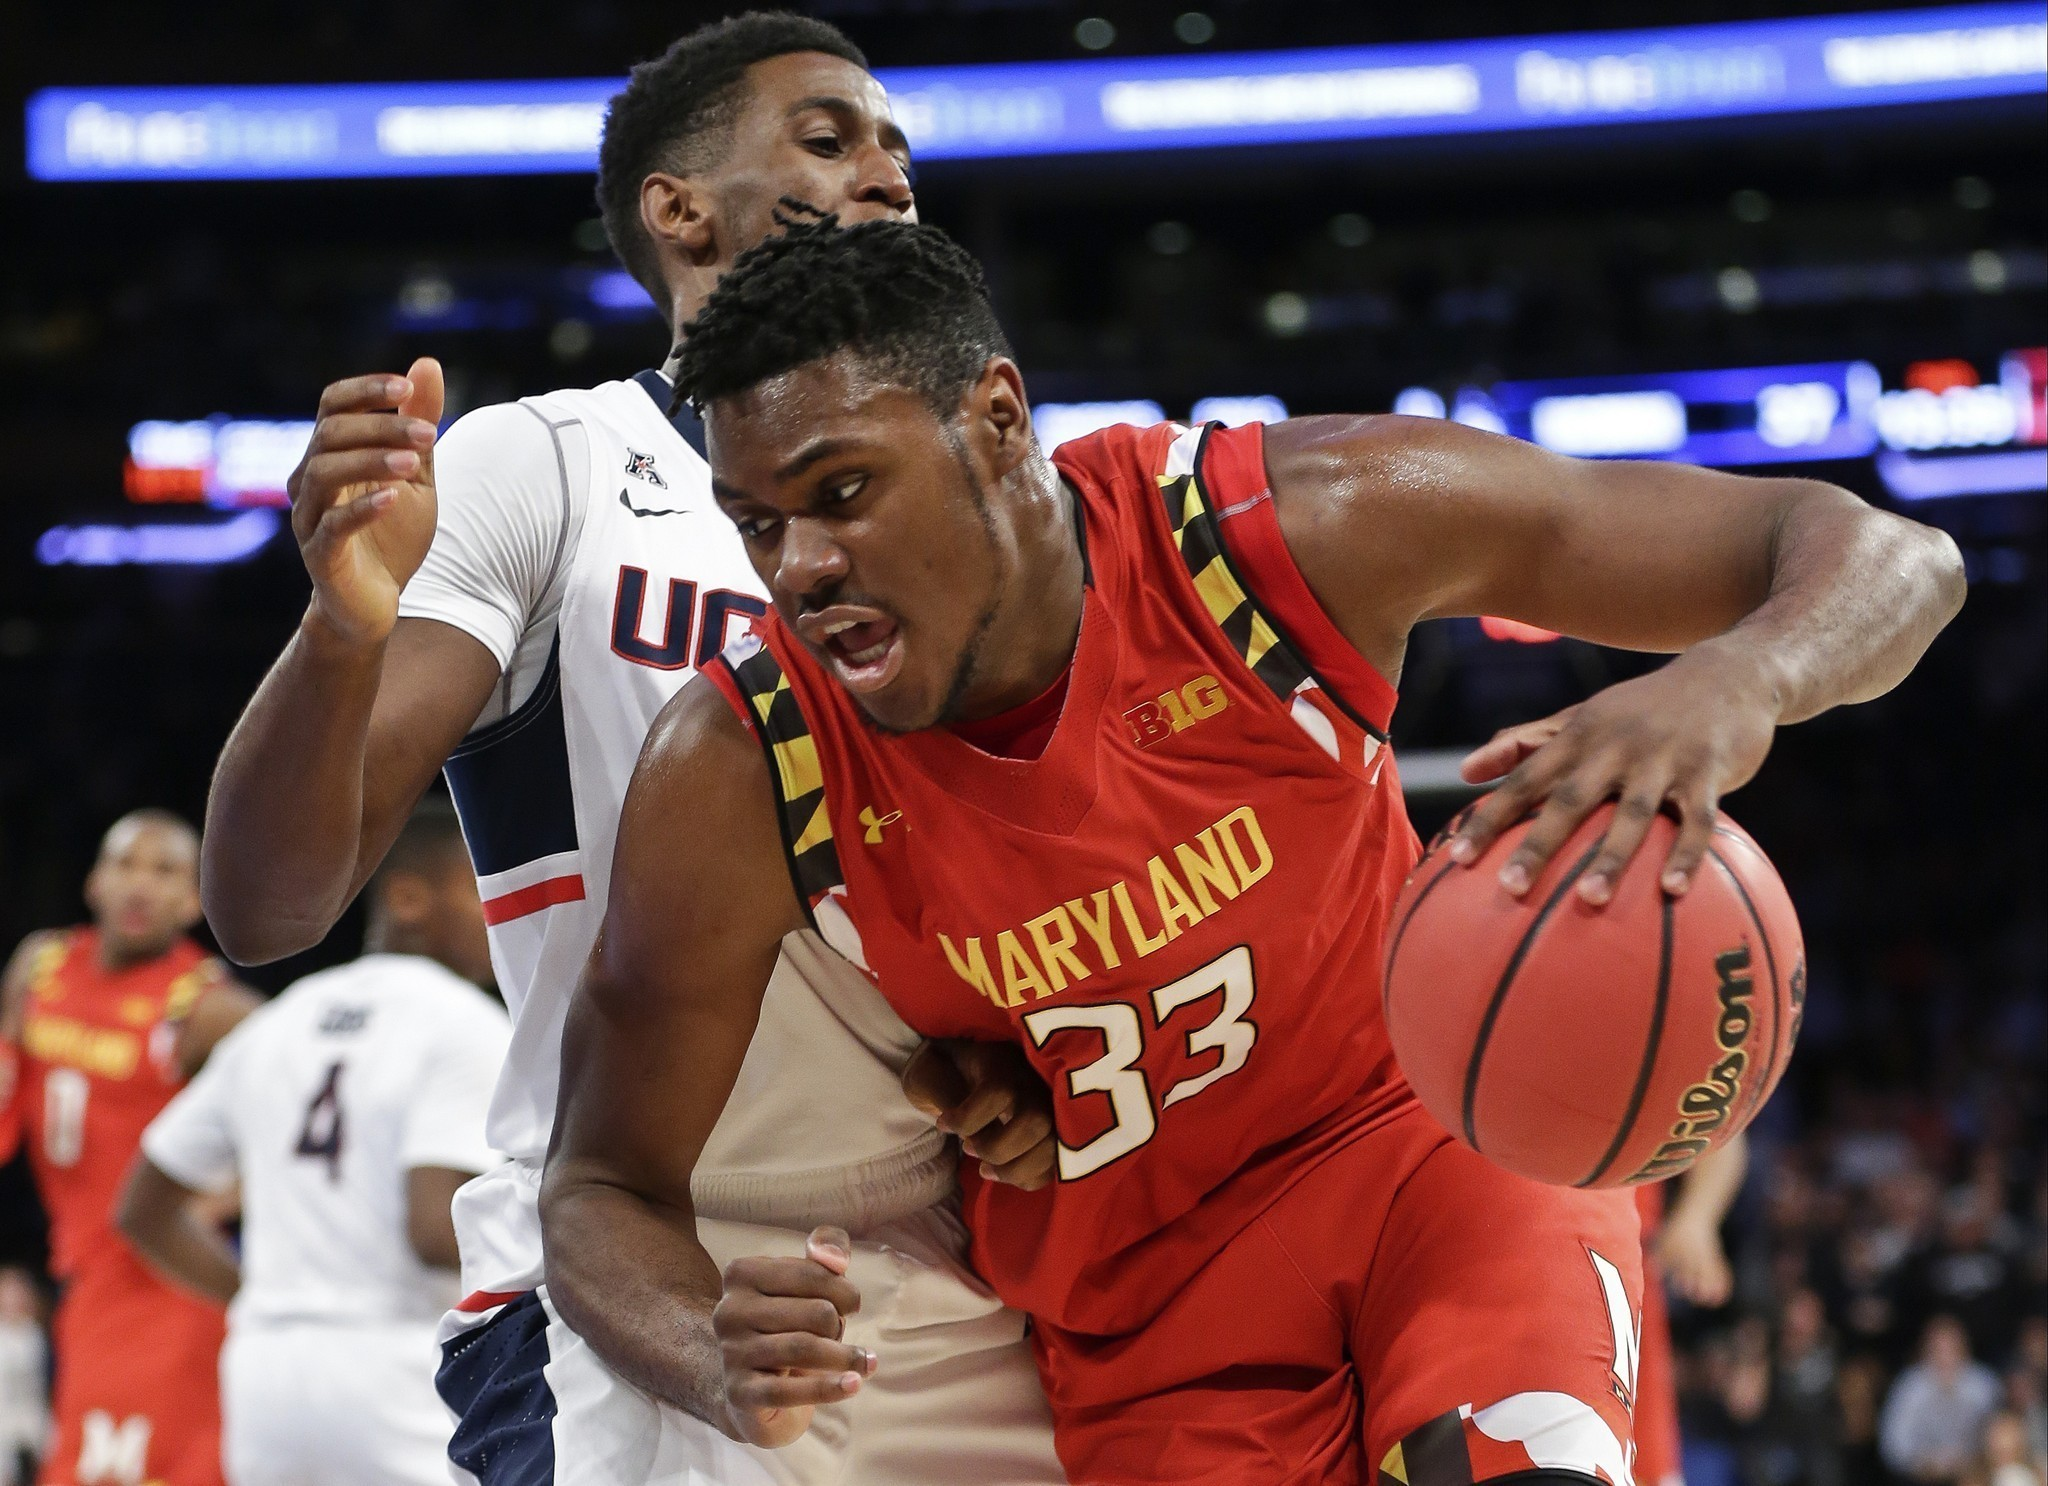 Report says Diamond Stone will declare for the NBA draft but the prospect's father says his ...